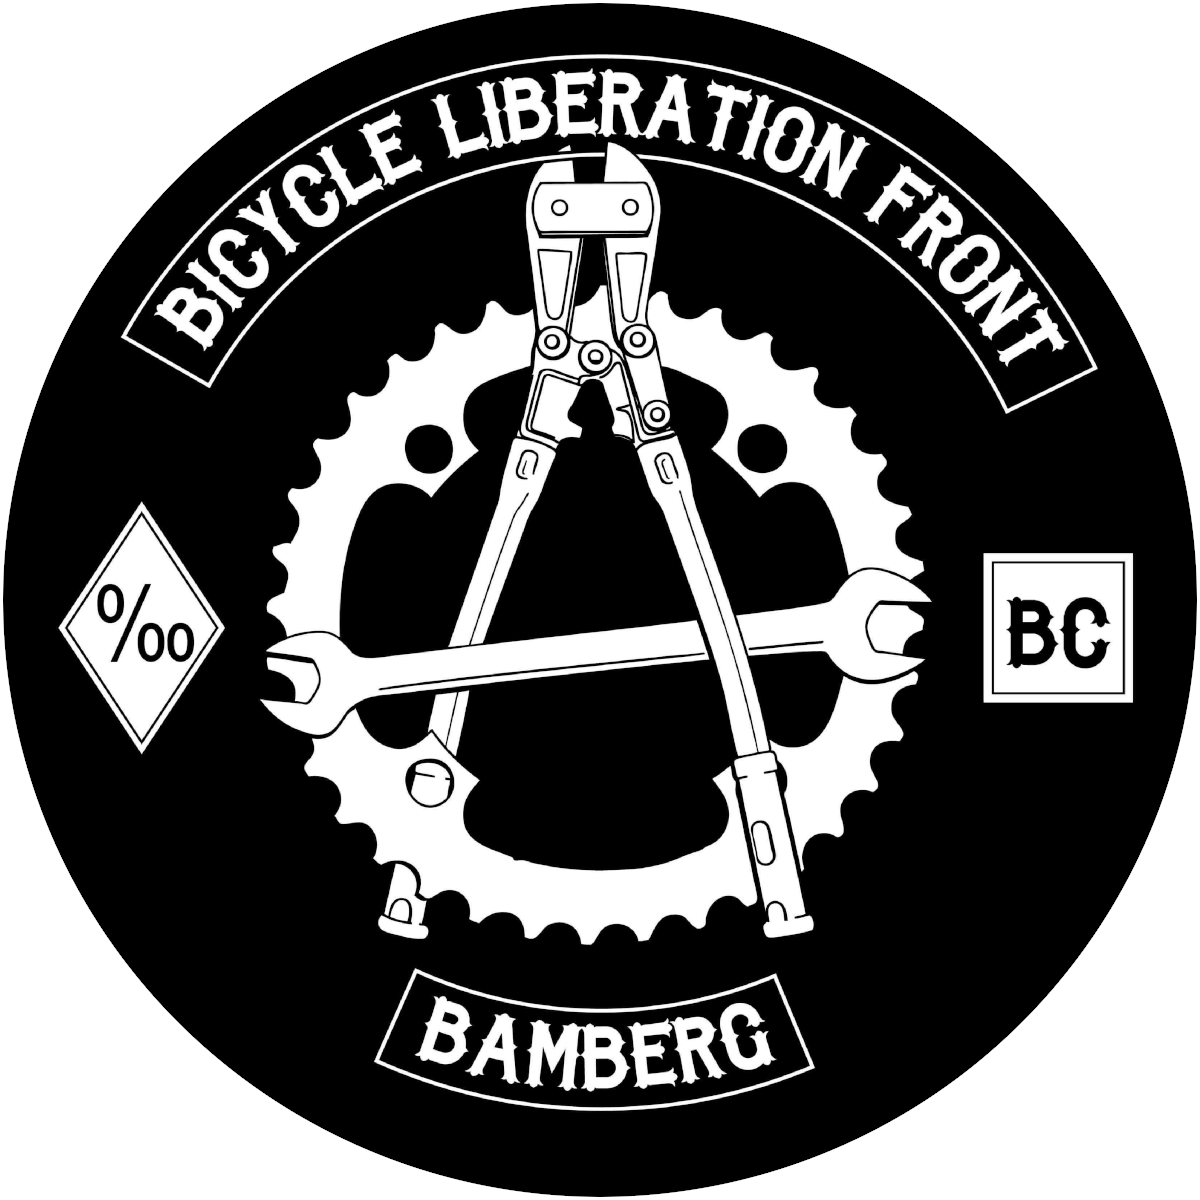 Bicycle Liberation Front